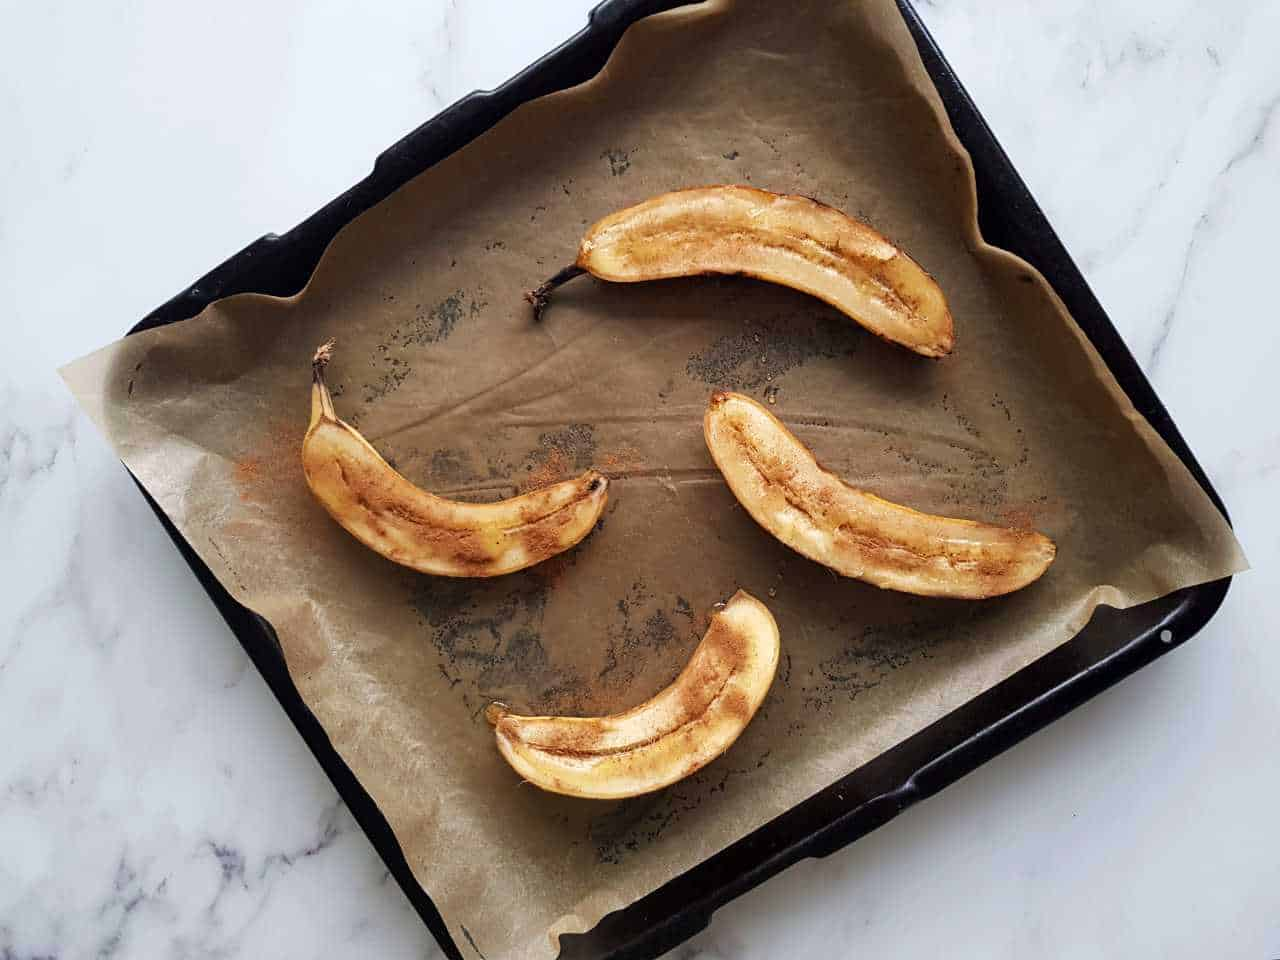 Sliced oven baked bananas on a baking sheet ready to bake on a marble table.